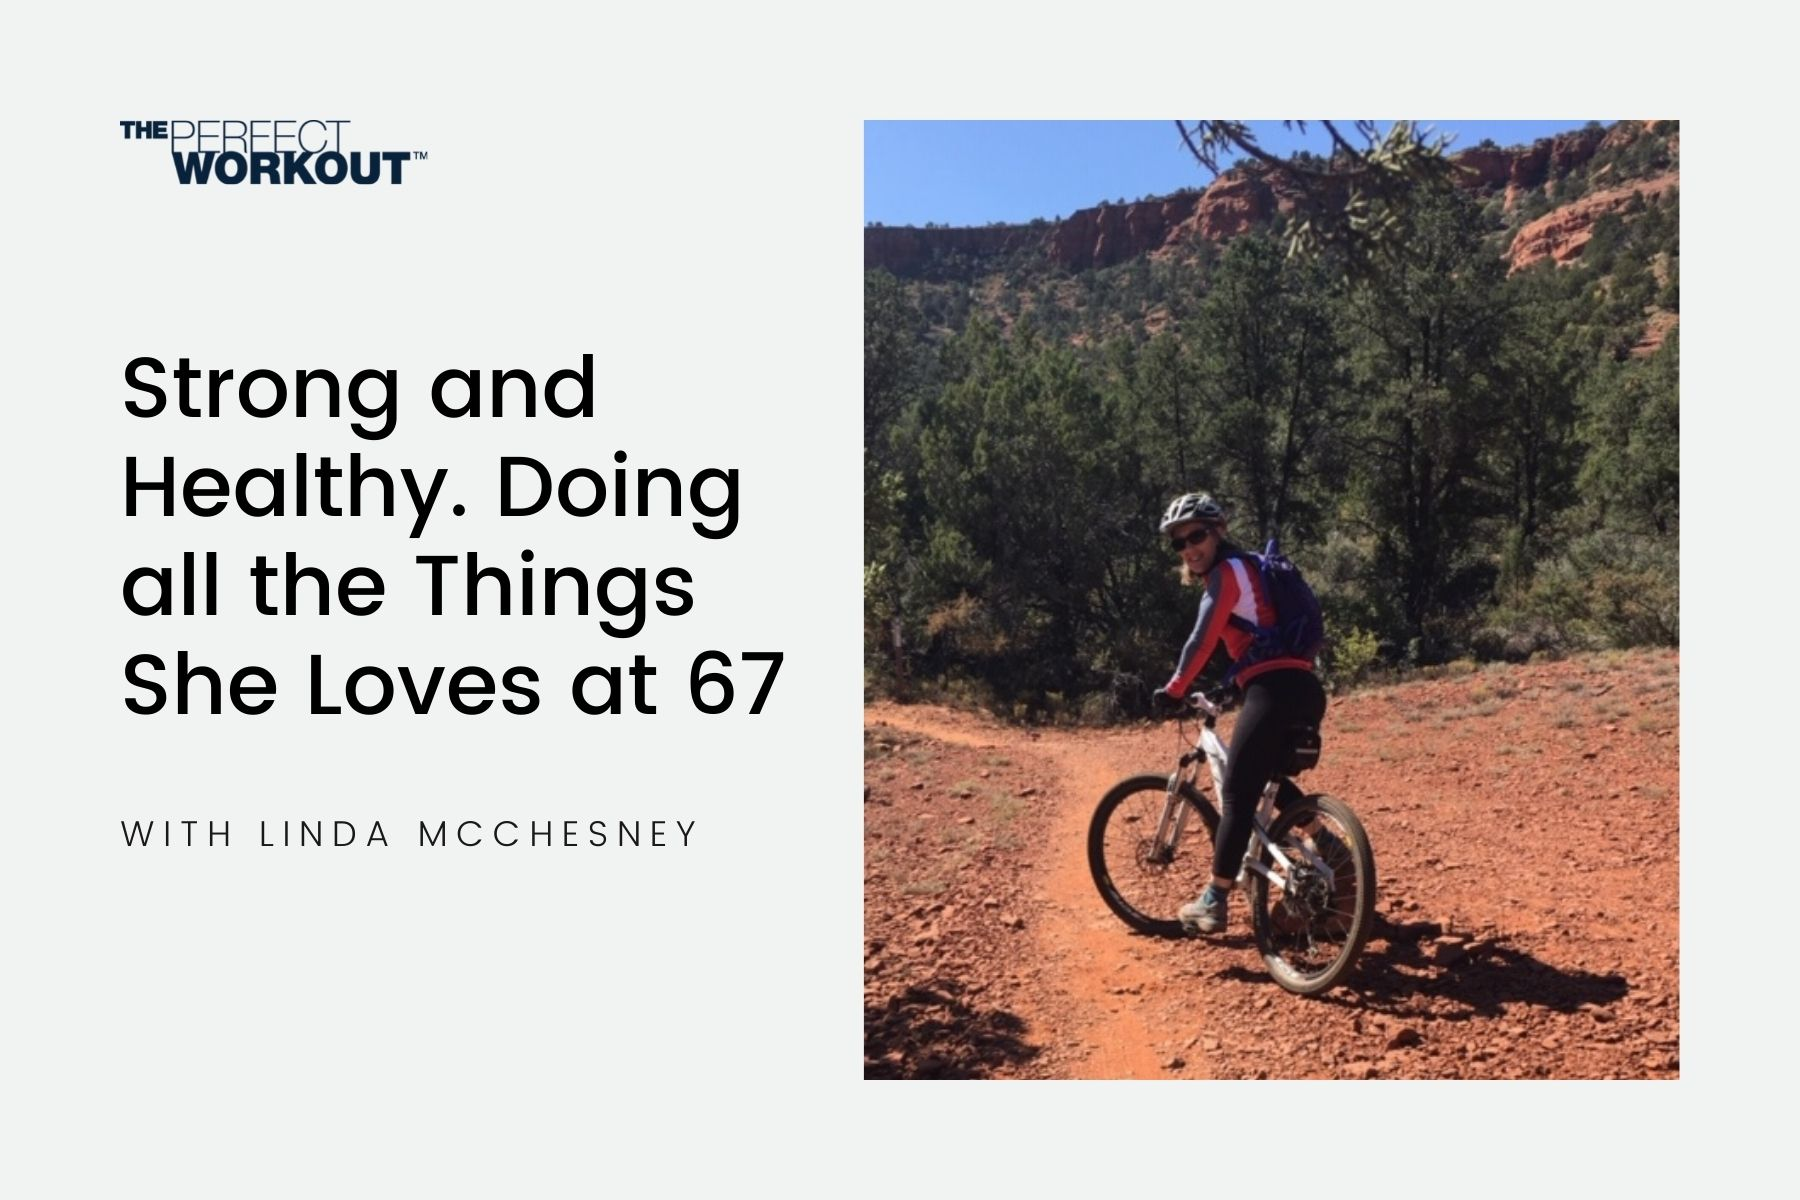 Strong and Healthy: Doing all the Things She Loves at 67